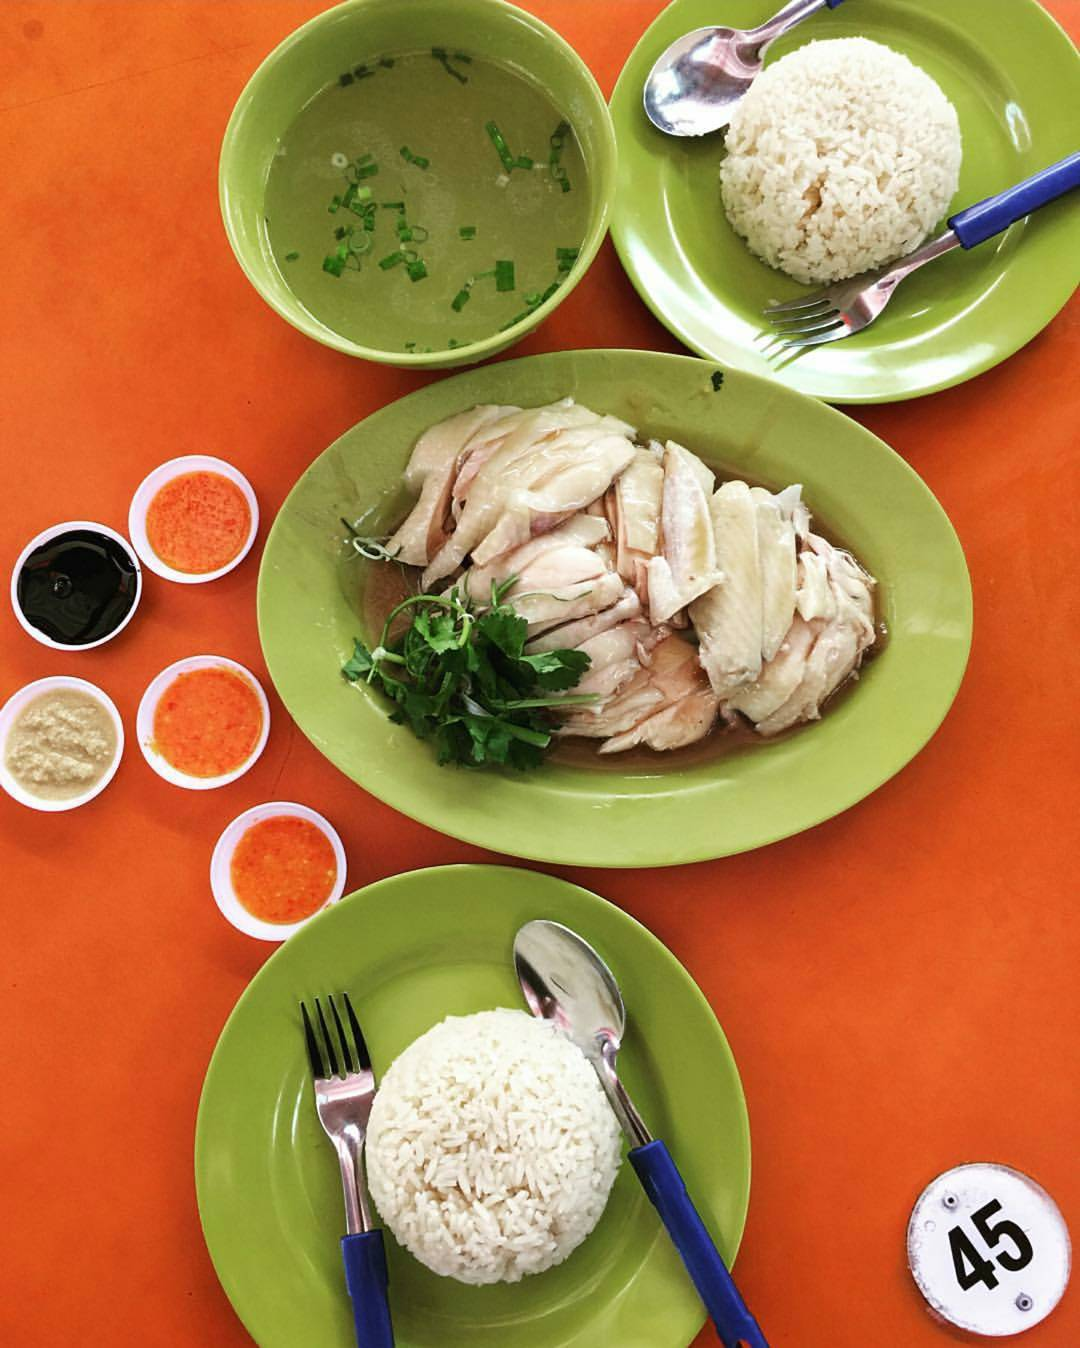 Hainanese chicken rice at Tian Tian Hainanese Chicken Rice, Singapore.